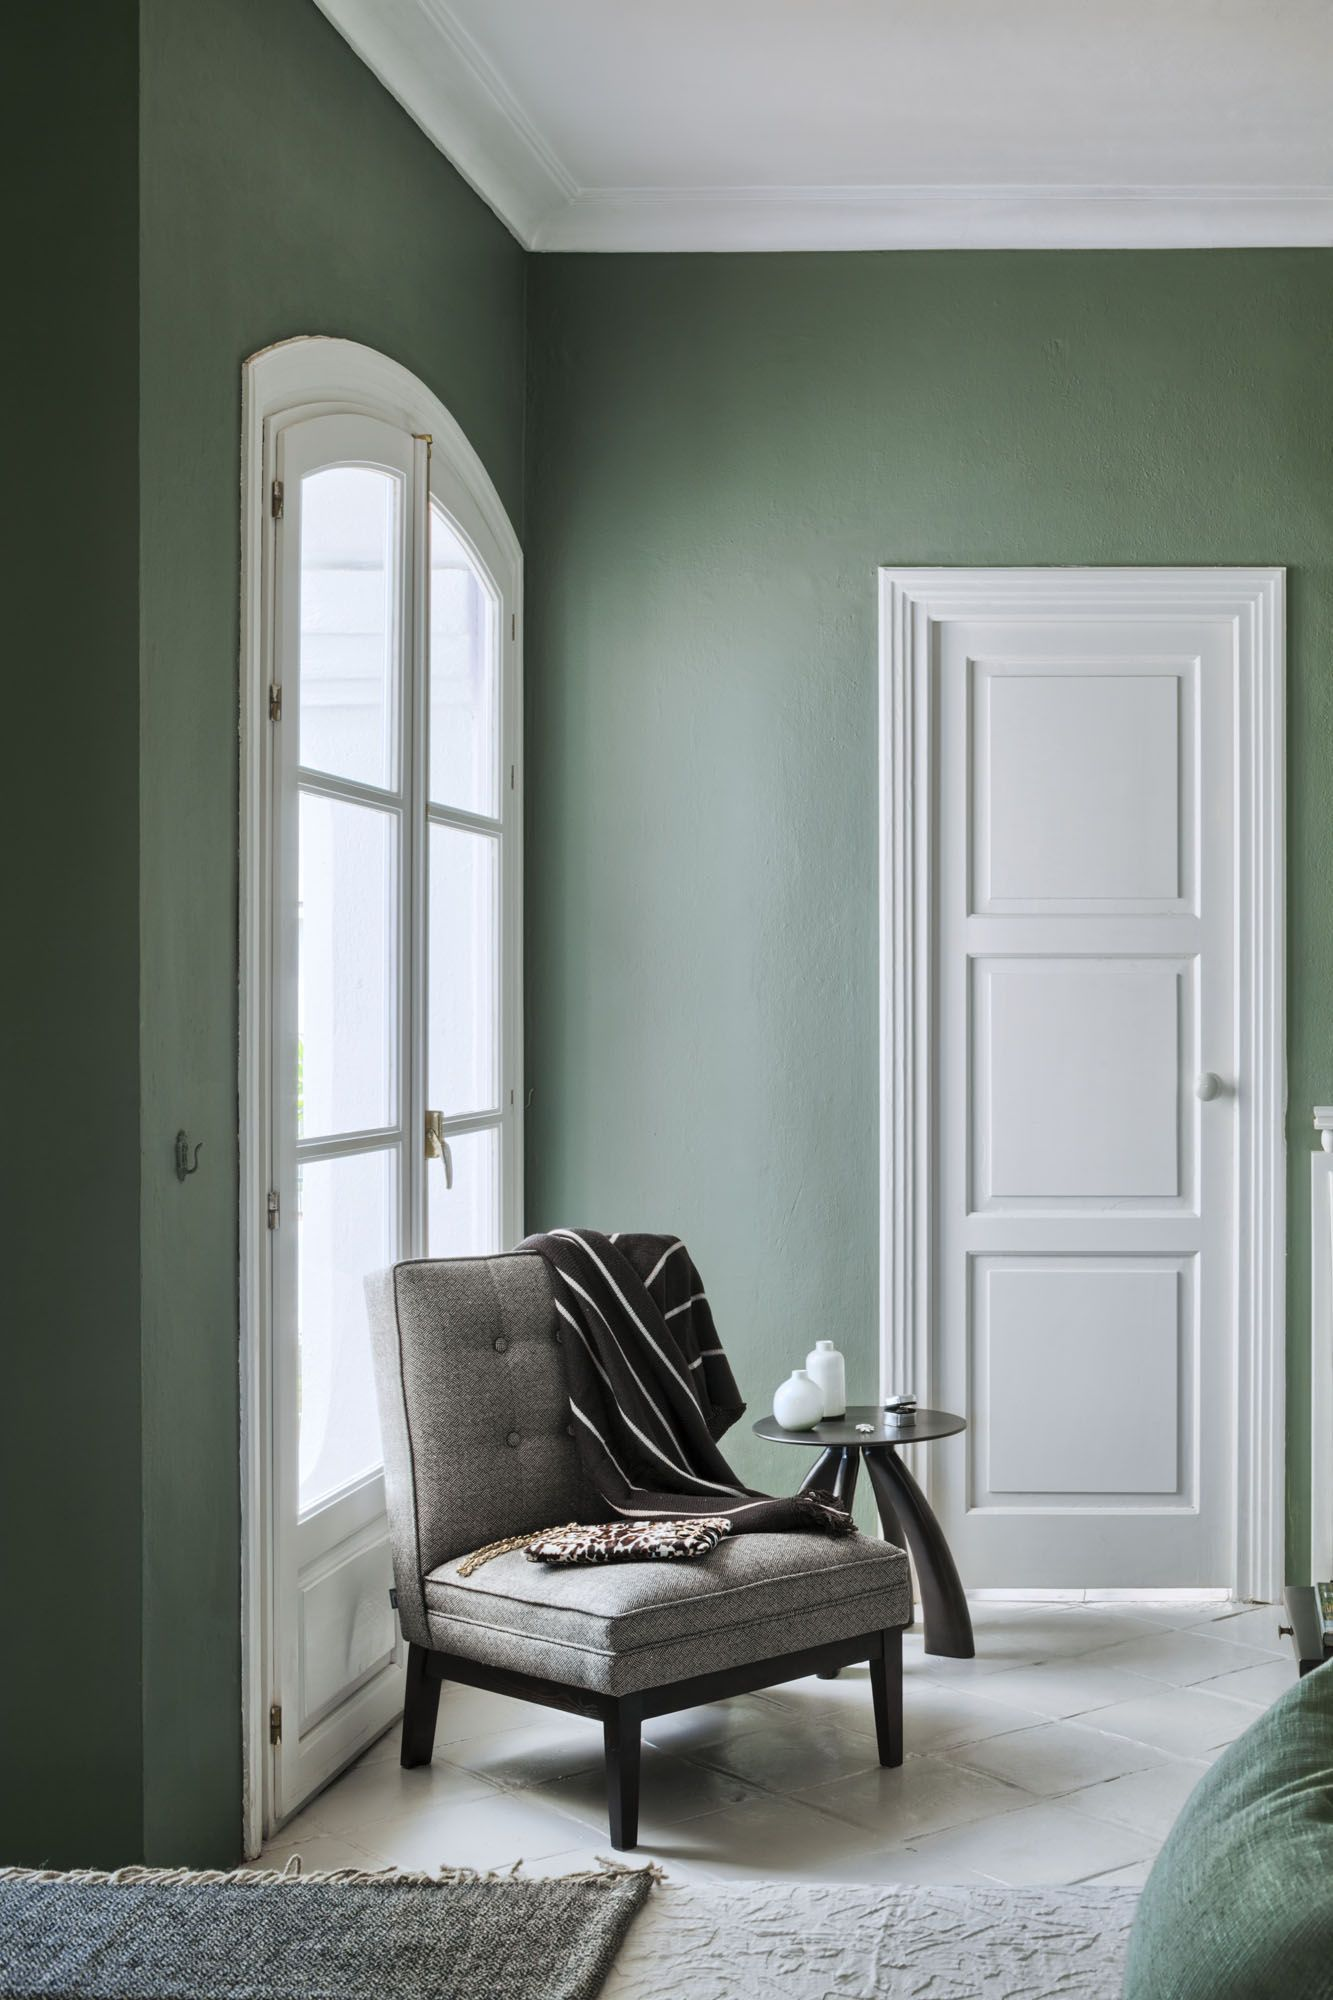 Farrow And Ball Green Smoke Living Room Den A Weathered Shade Of Smoky Channels The Traditional Aesthetic English Countryside